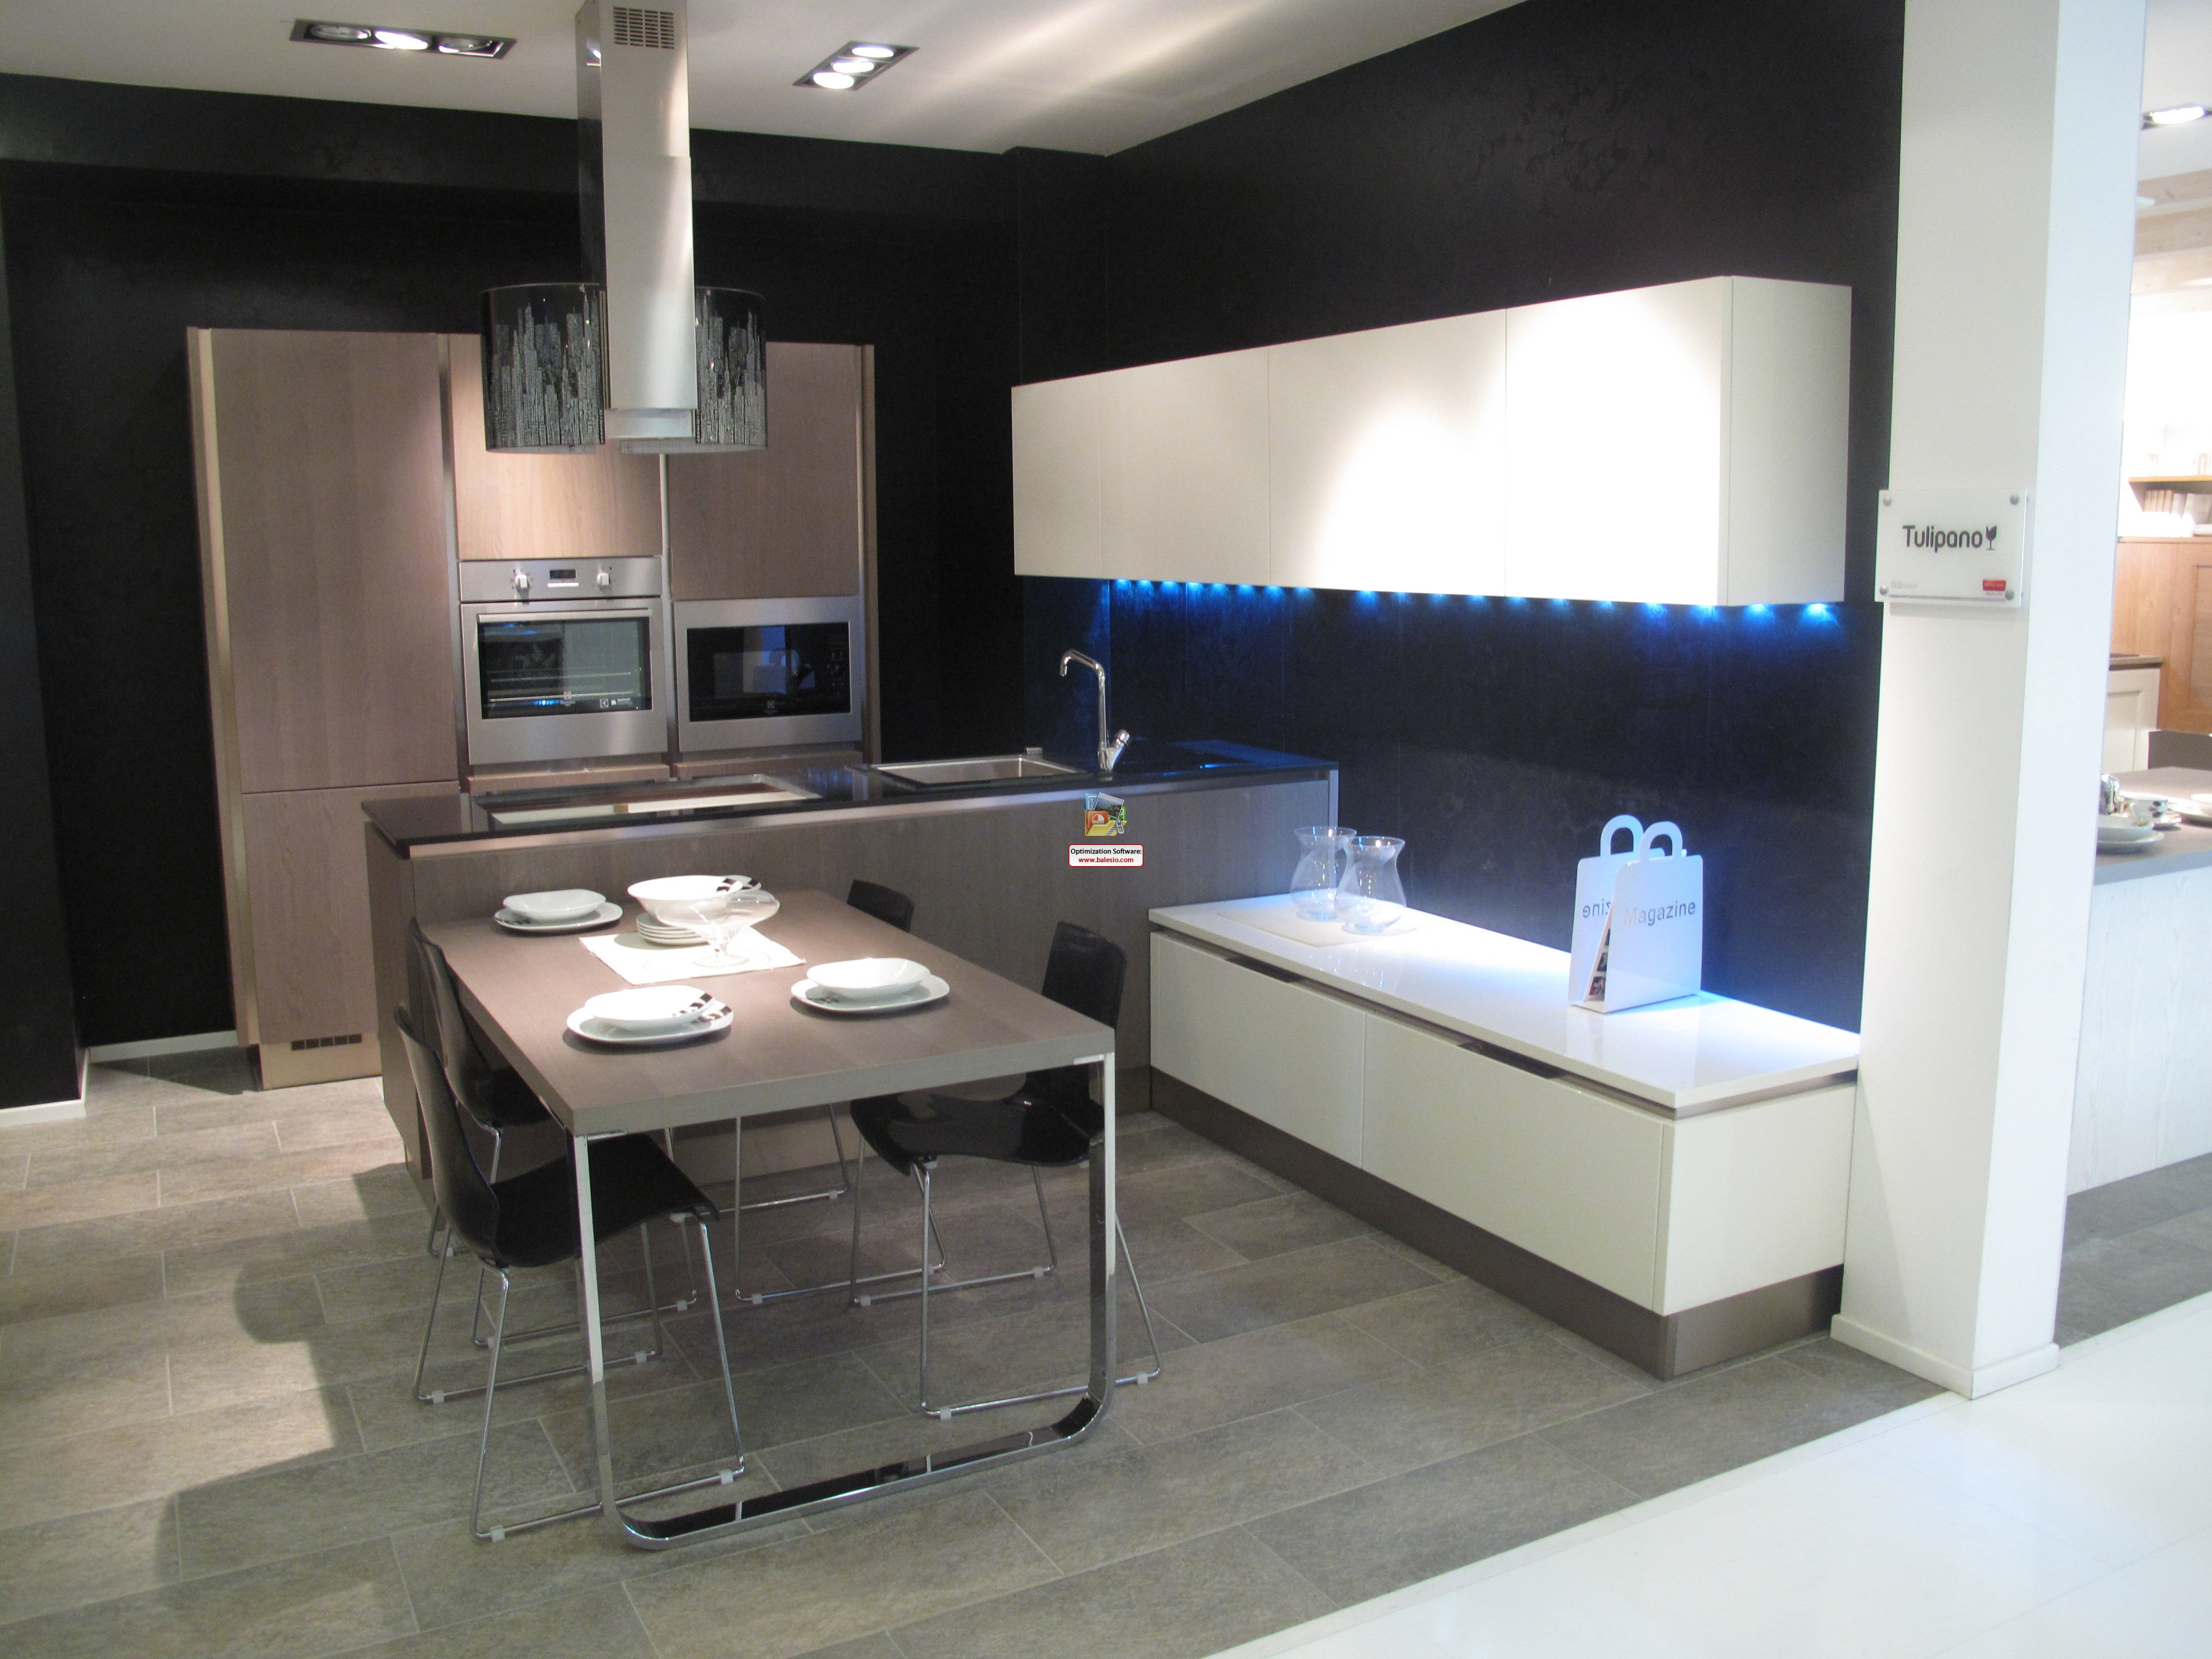 Isola cucina con tavolo isola cucina con tavolo with - Isola in cucina ...